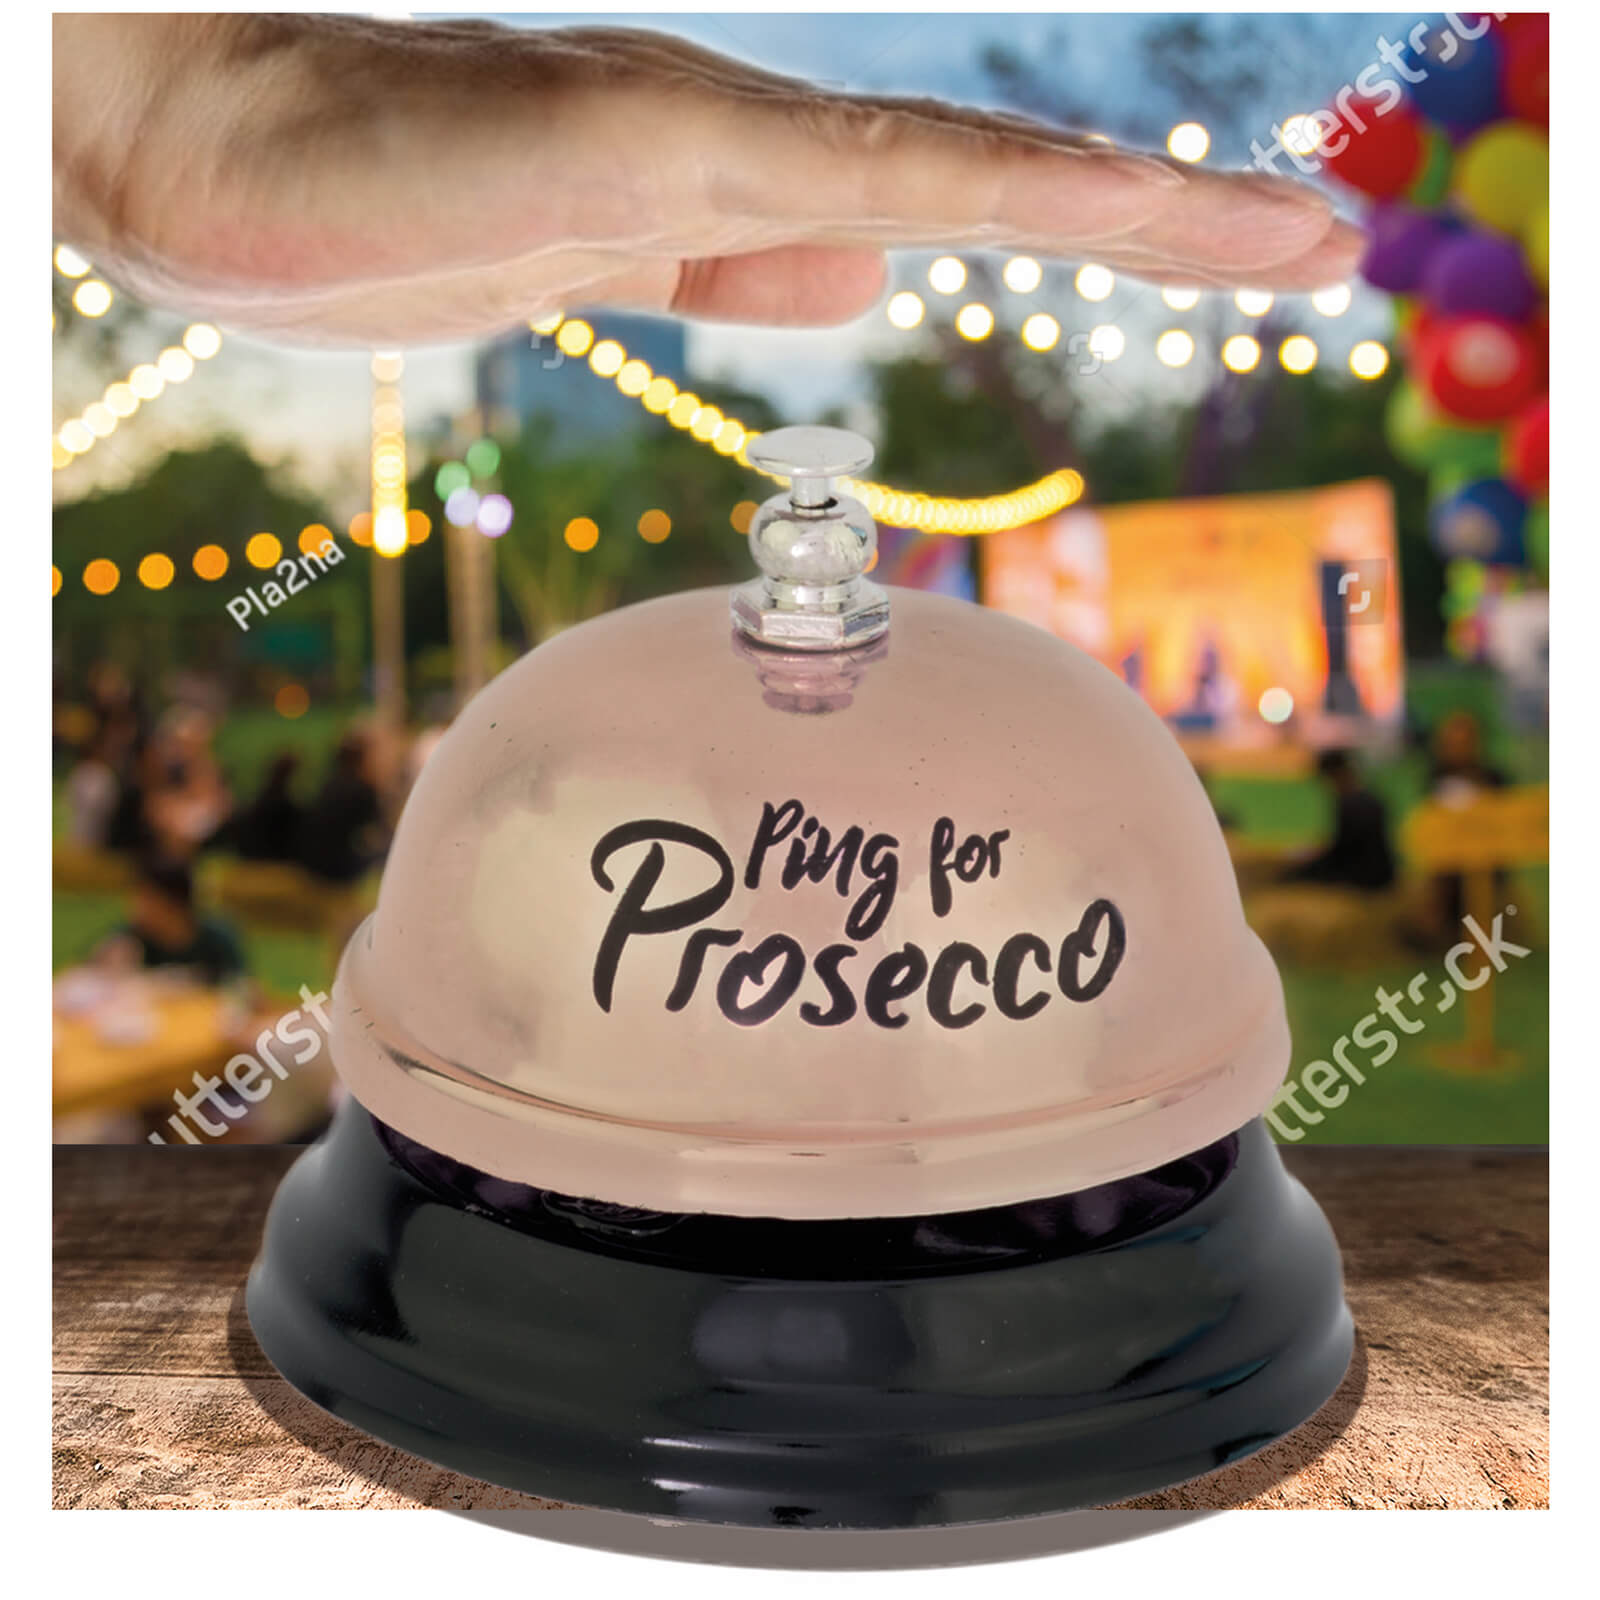 Ping for Prosecco Bell